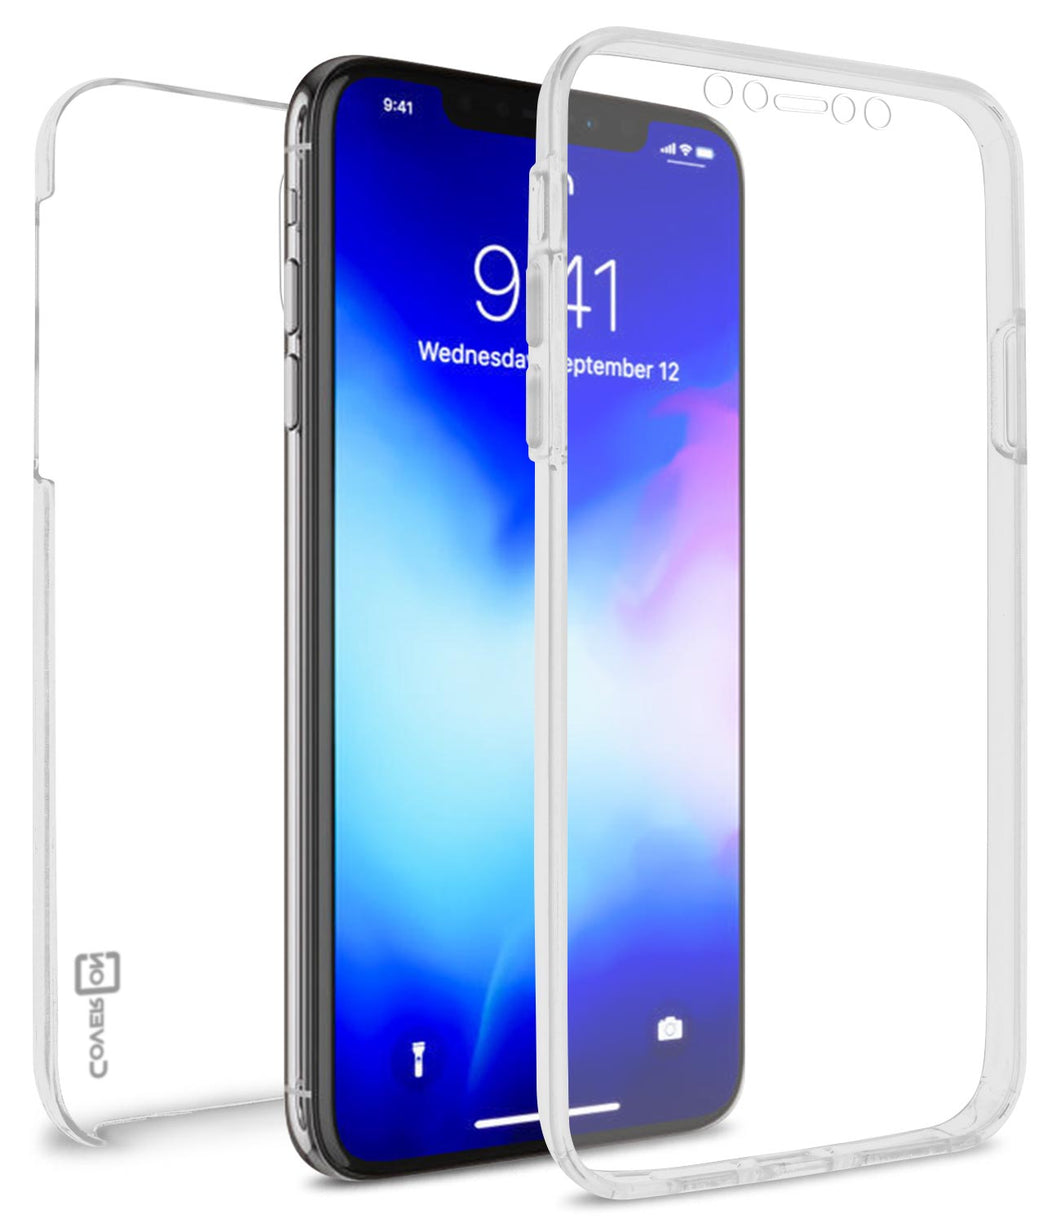 iPhone 11 Pro Full Body Case with Screen Protector - SlimGuard Series